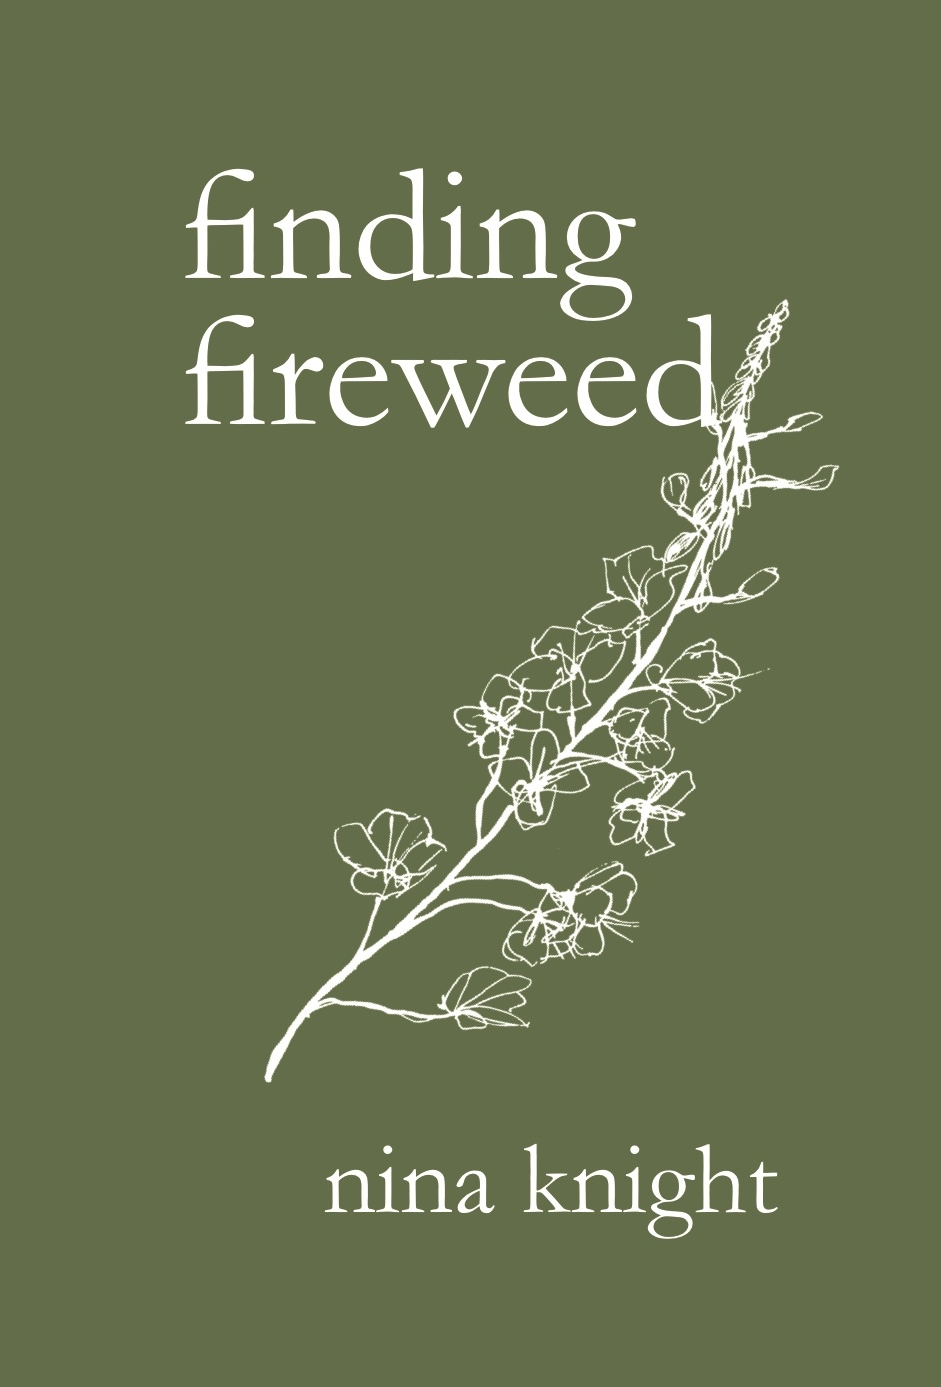 finding fireweed - Full OverhaulDesign CoordinationEditsSelf-Publishing SupportMarketingAvailable on Amazon